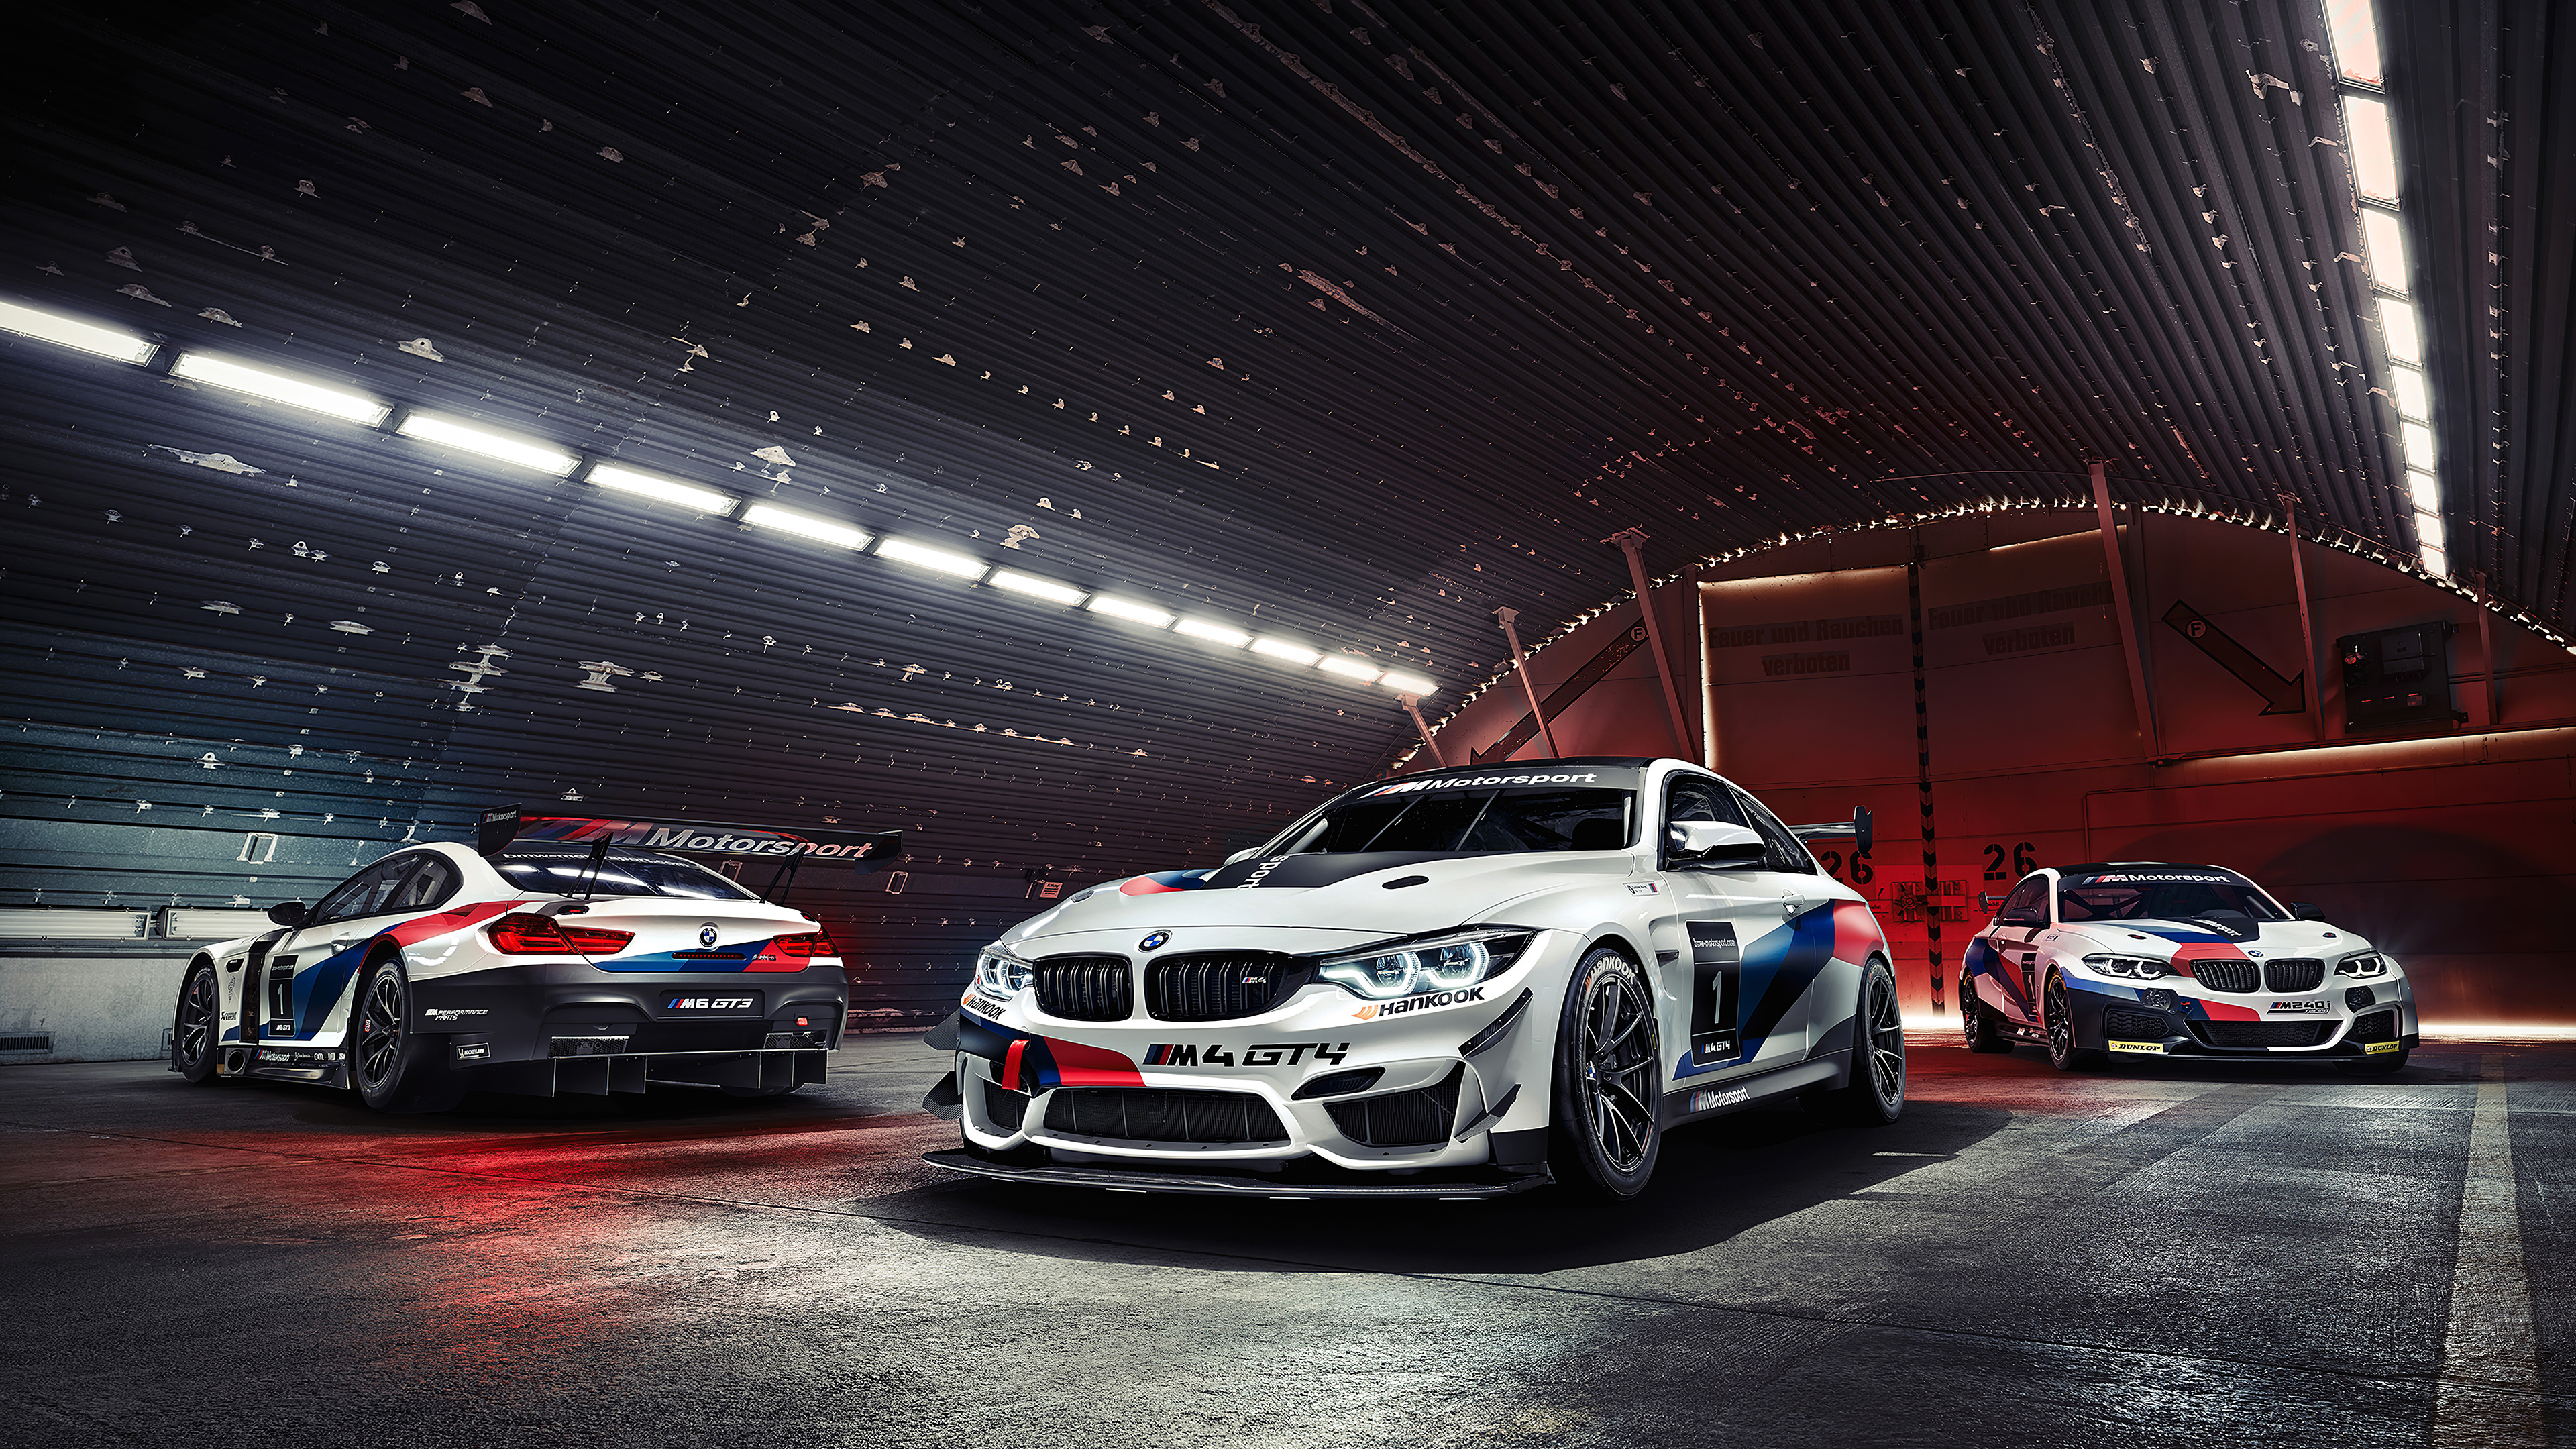 bmw m4 gt 1572661152 - Bmw M4 Gt - hd-wallpapers, cars wallpapers, bmw wallpapers, bmw m4 wallpapers, behance wallpapers, 4k-wallpapers